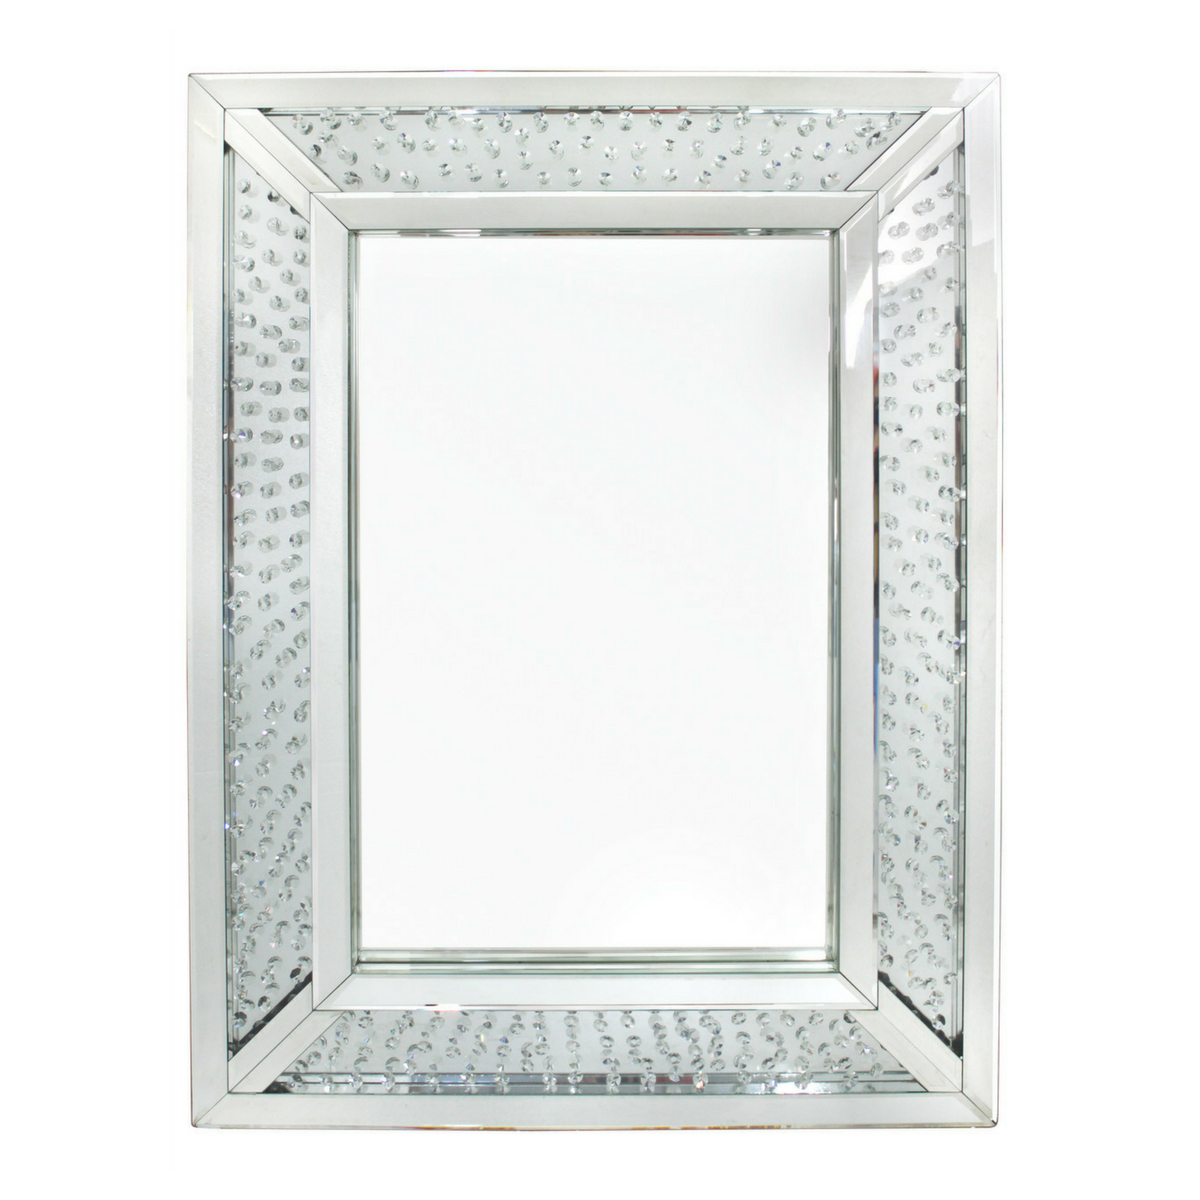 Astoria Wall Mirror Throughout 2019 Crystal Wall Mirrors (View 13 of 20)